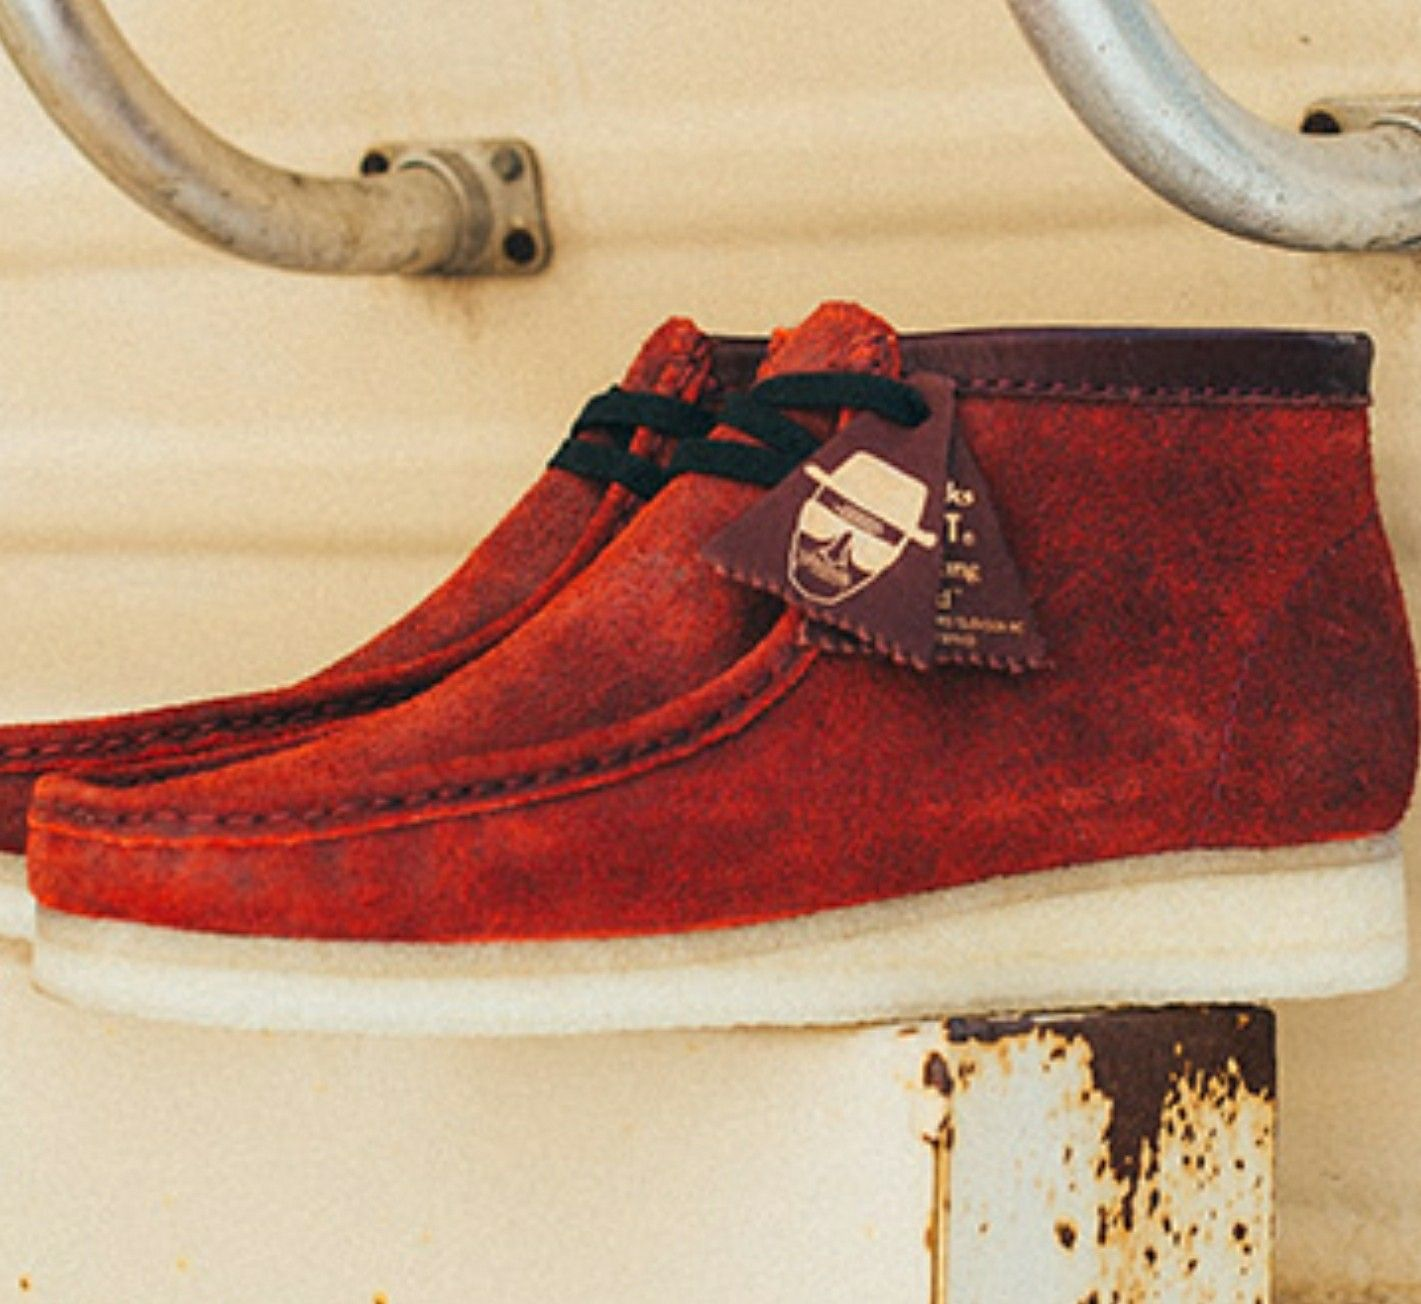 Breaking Bad Clarks Wallabees | Clarks shoes mens, Clarks